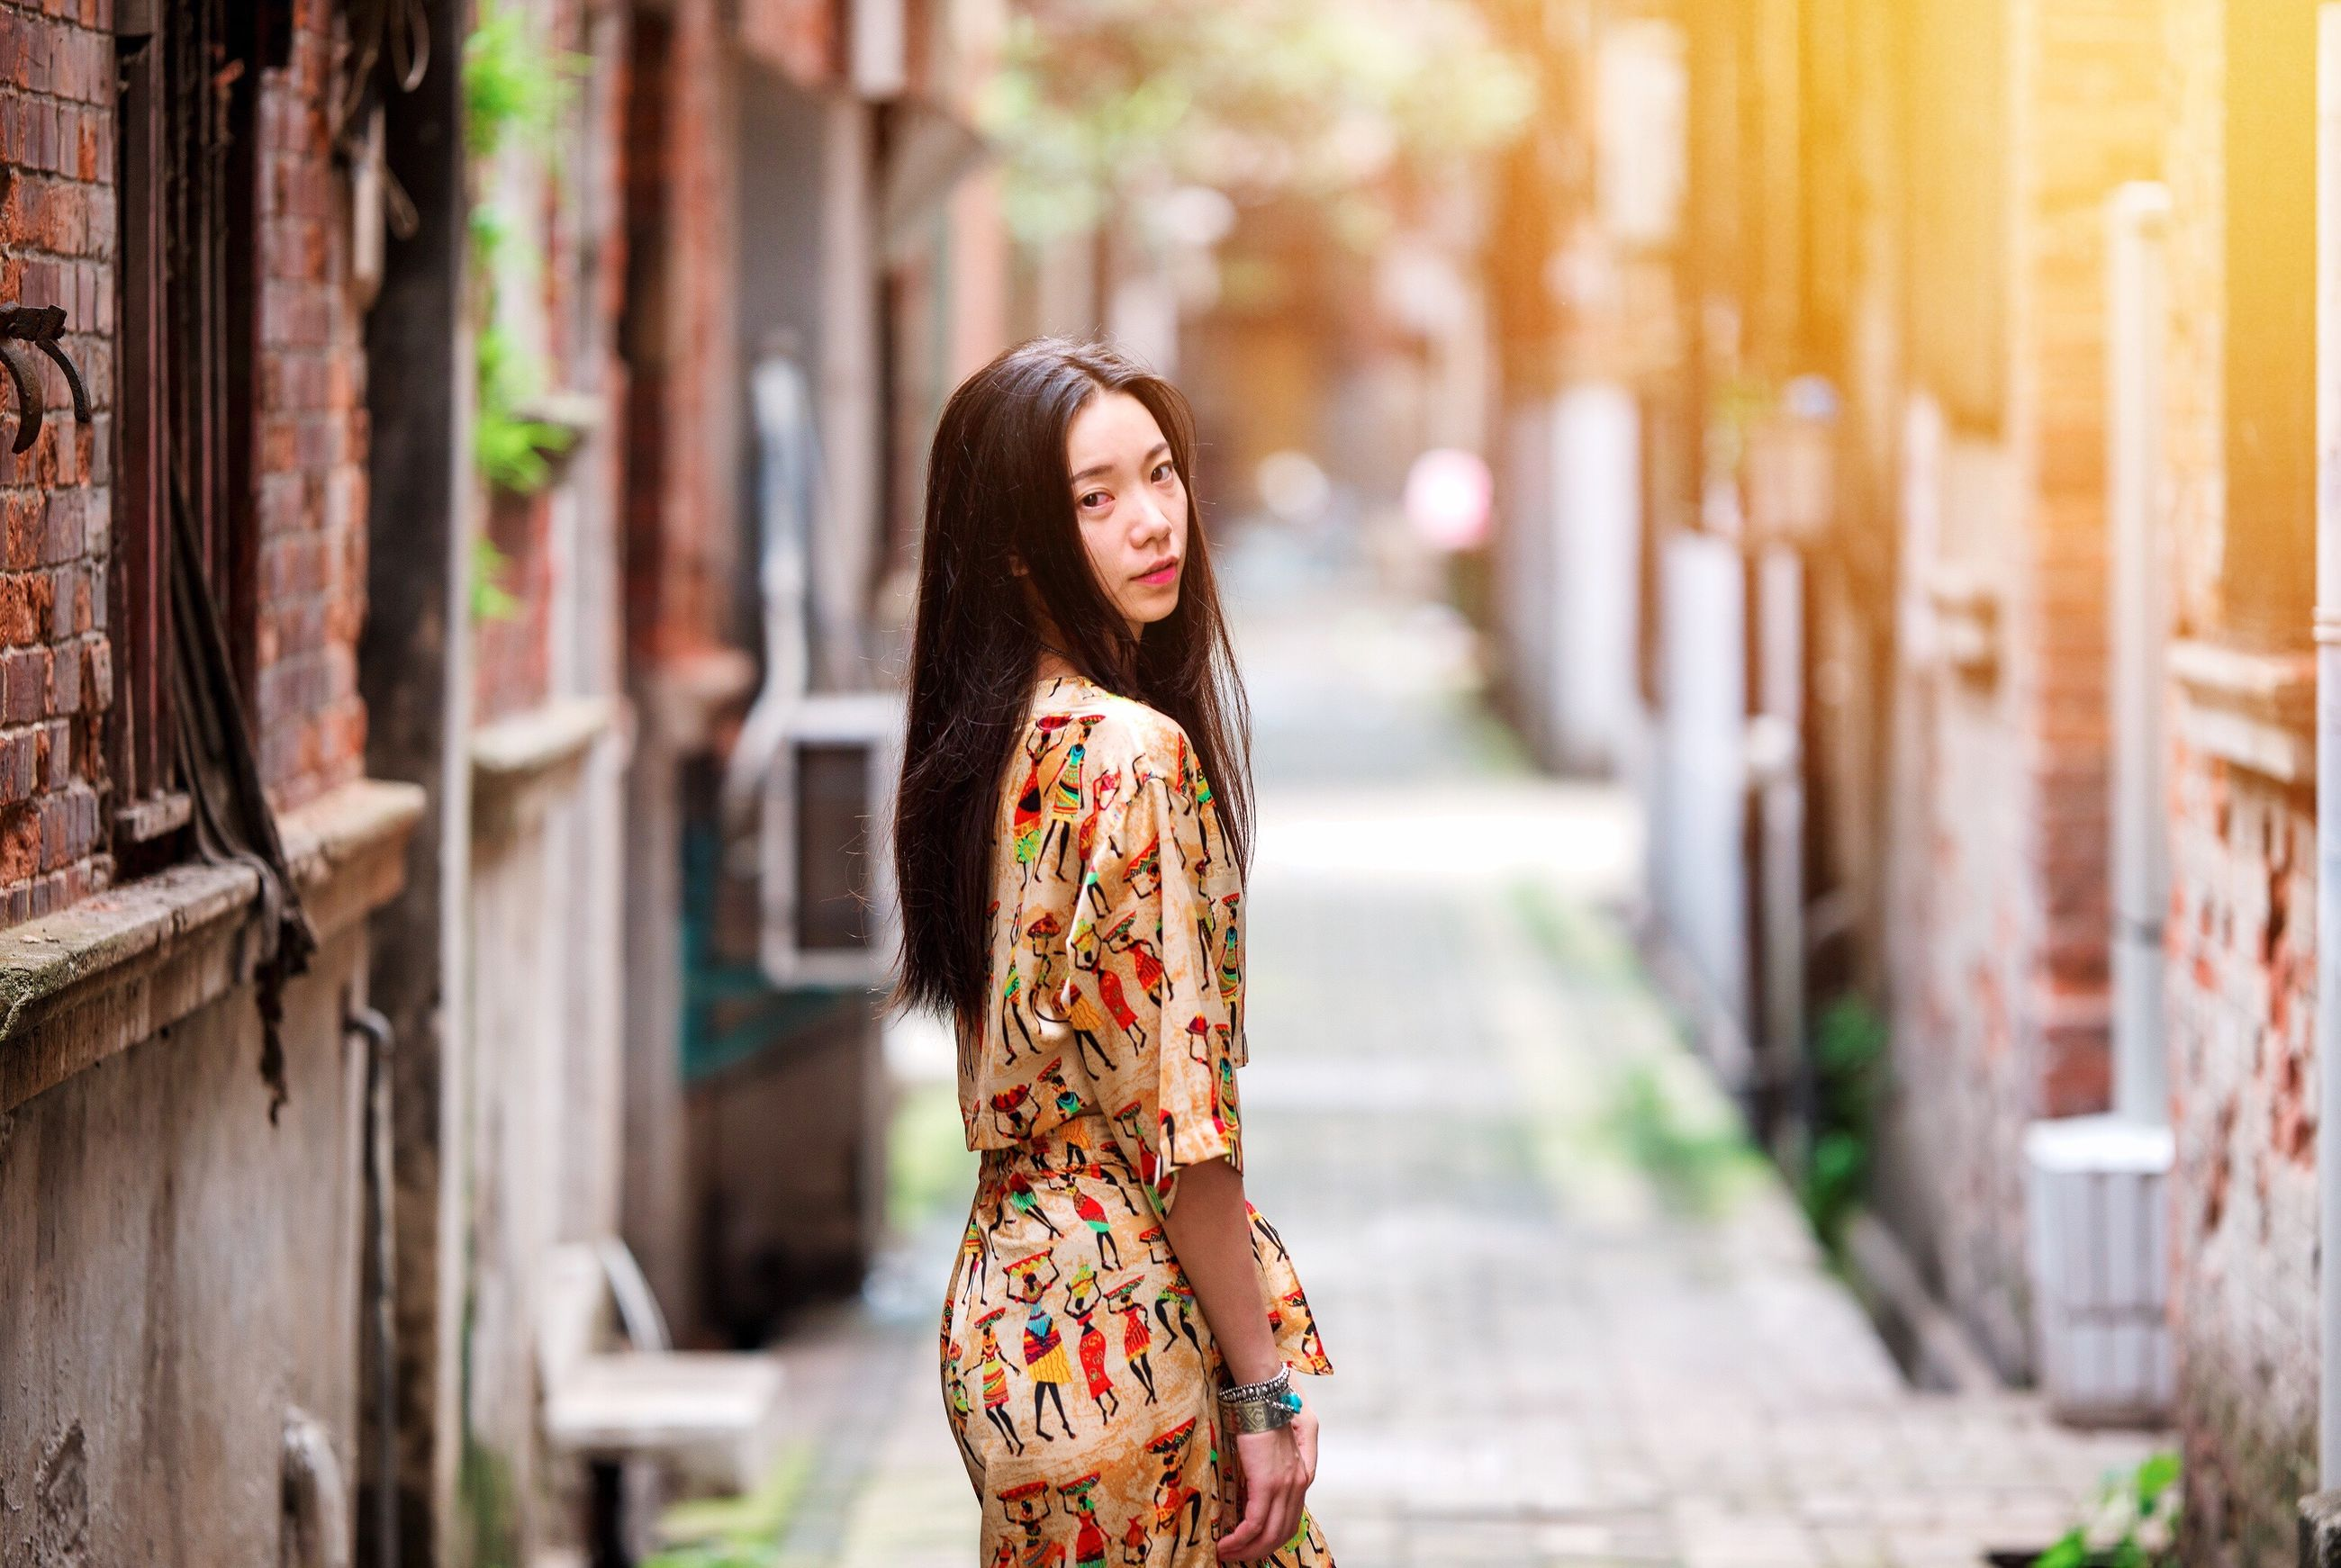 focus on foreground, lifestyles, standing, front view, casual clothing, young adult, looking at camera, portrait, person, leisure activity, waist up, three quarter length, smiling, young women, fashion, day, outdoors